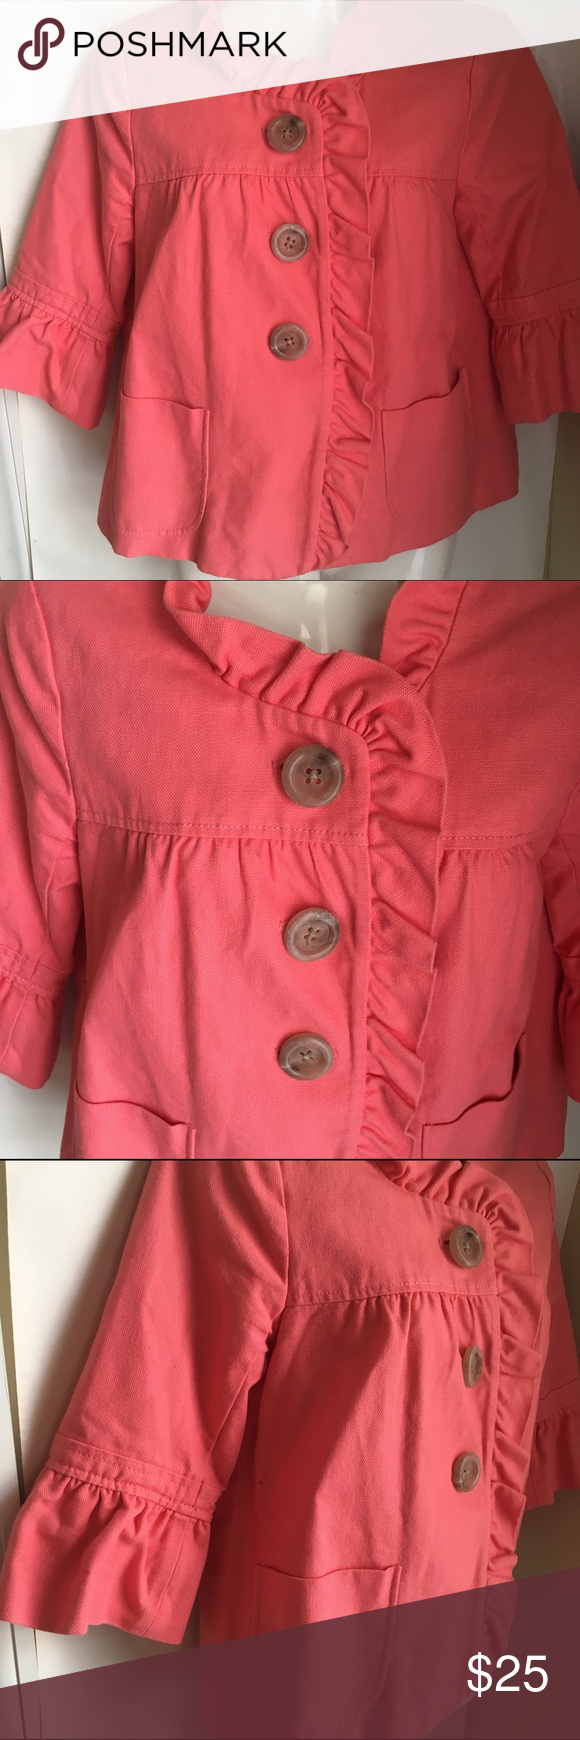 J Crew Ruffle Blazer 4 S pink peach button 3/4 slv Adorable bright pink/peach Ruffle Blazer in heavy weight cotton. 3/4 sleeves. Ruffle collar & sleeves. Very good preowned condition! Smoke free, pet free home. J. Crew Jackets & Coats Blazers